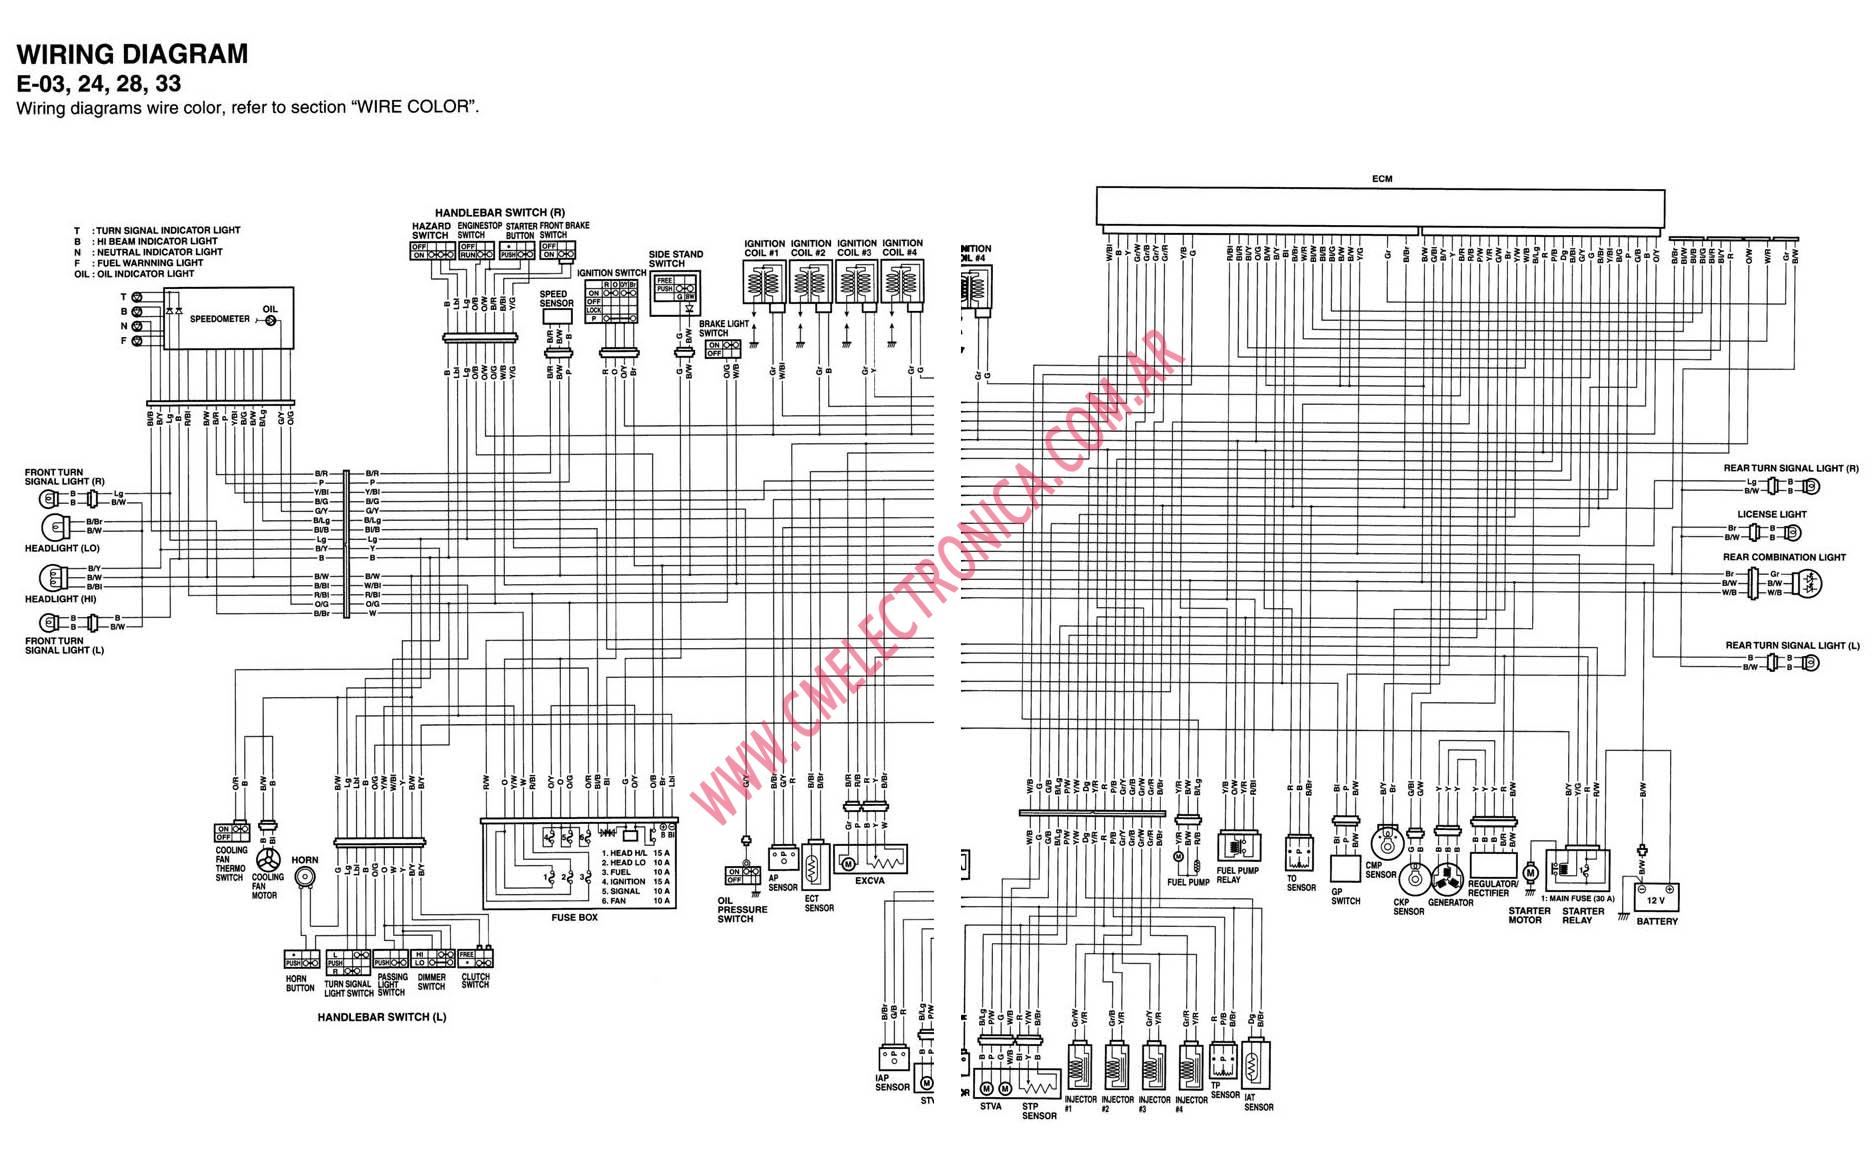 2001 suzuki gsxr 600 wiring diagram  u2022 wiring diagram for free